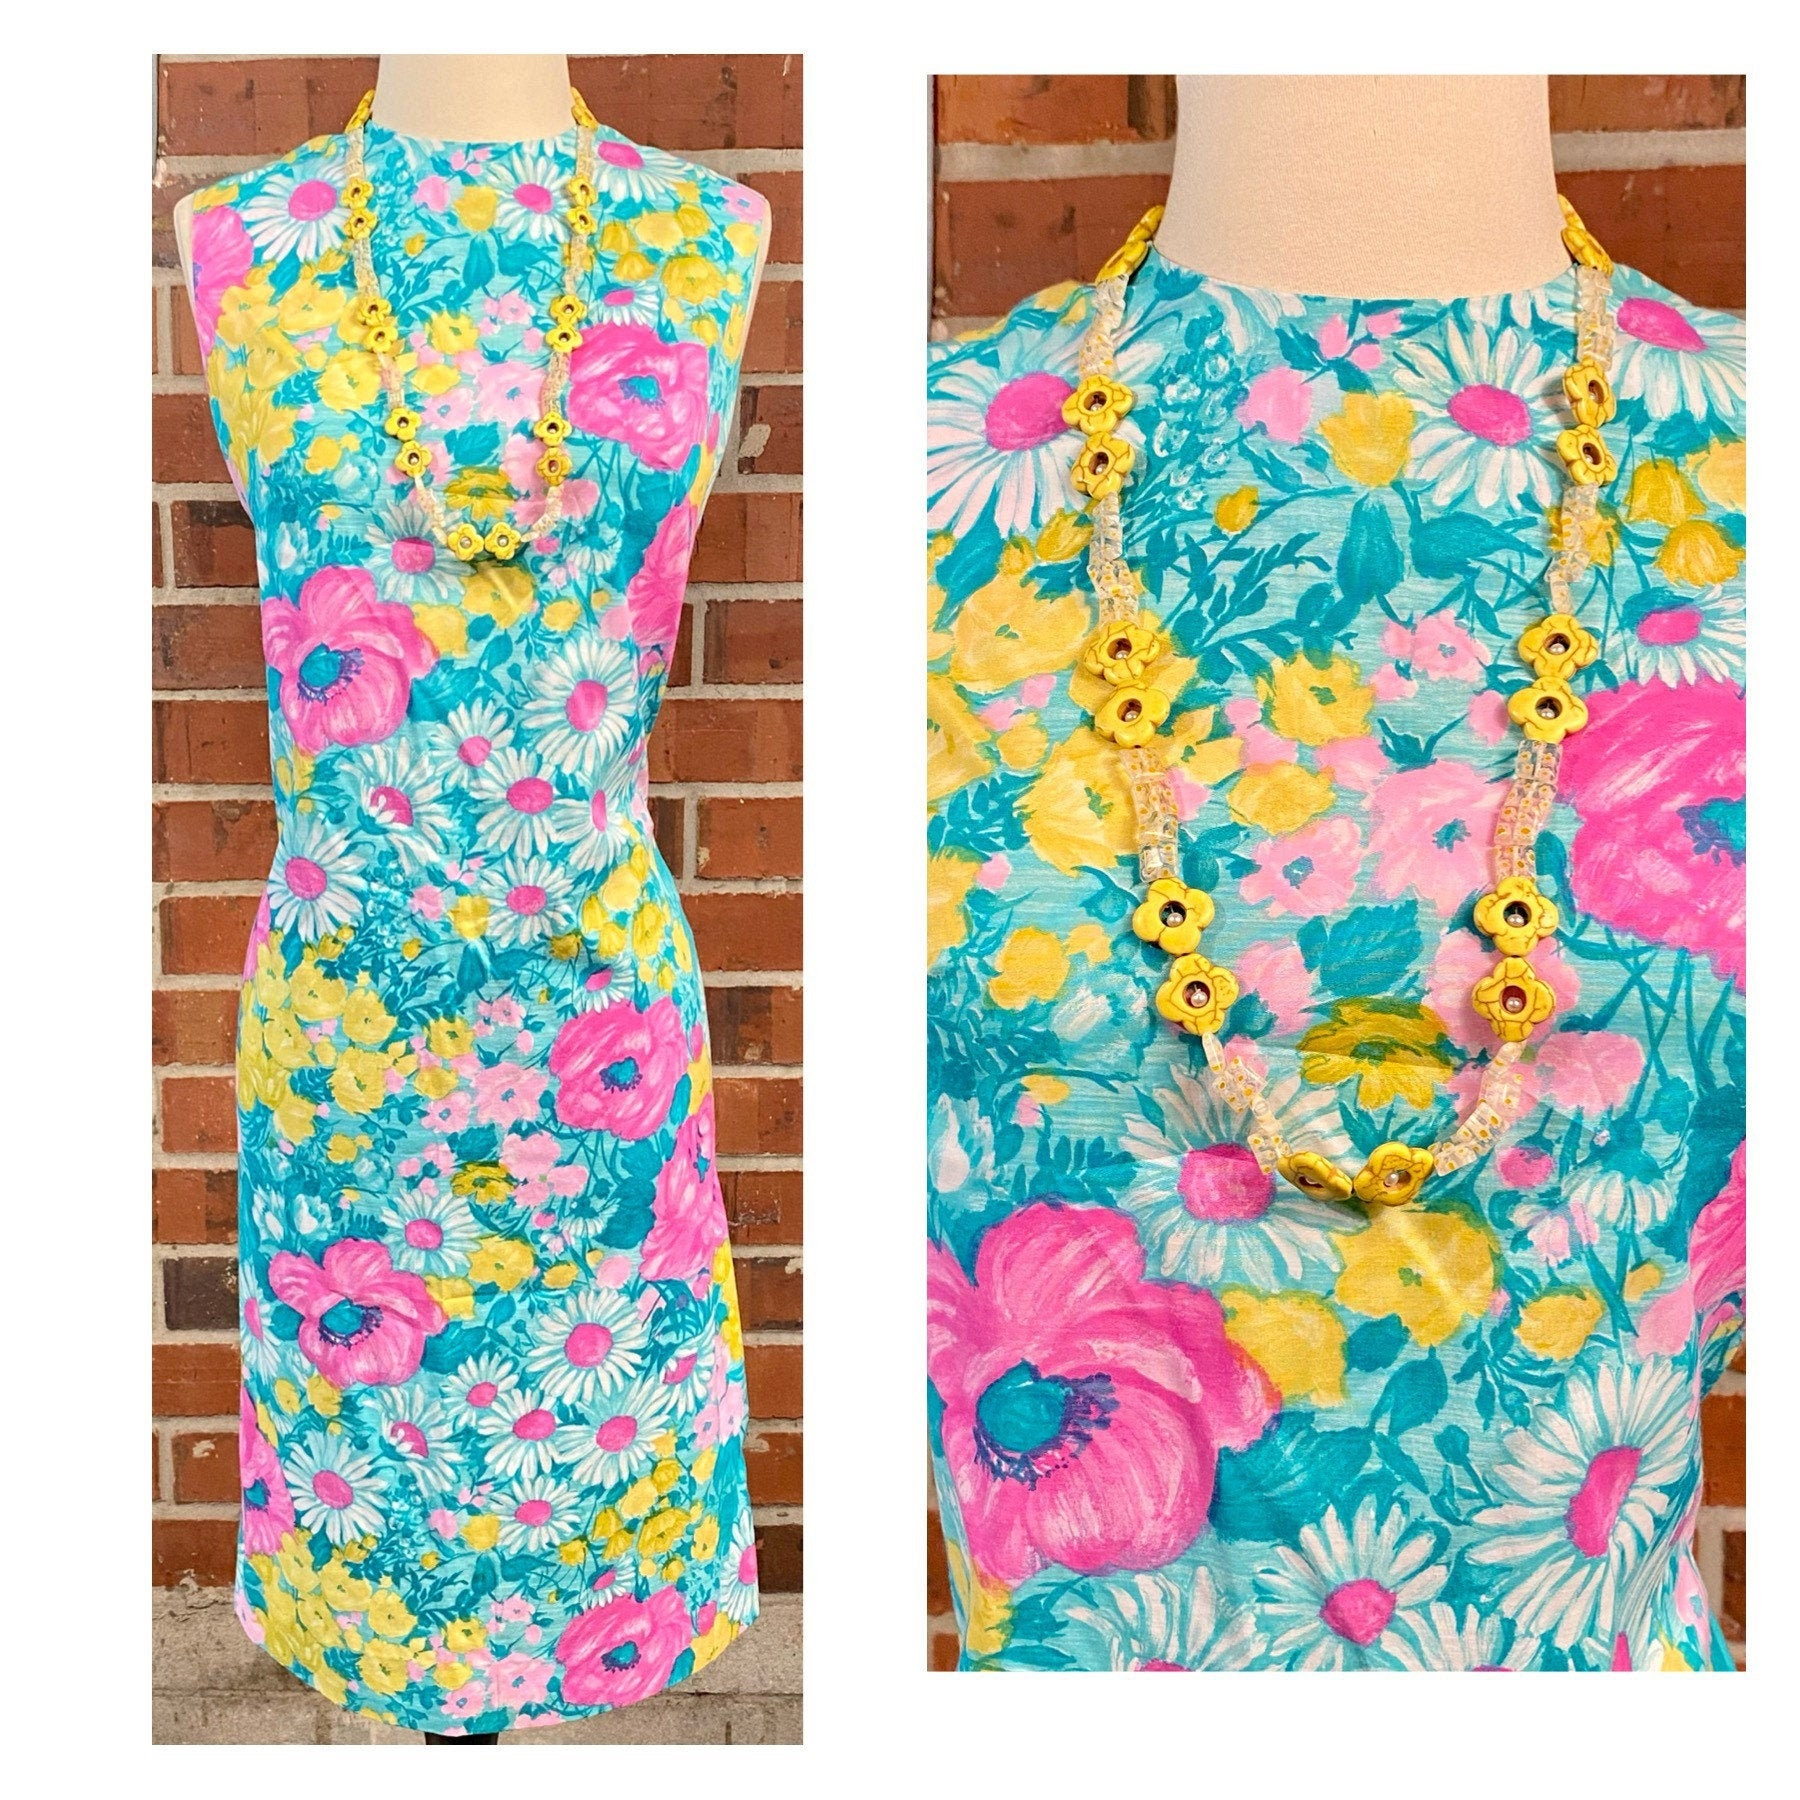 60s -70s Jewelry – Necklaces, Earrings, Rings, Bracelets Vintage 1960S Floral Sheath Dress, Colorful 60S Bright Color Neon Flowers Hot Pink Dress $61.60 AT vintagedancer.com